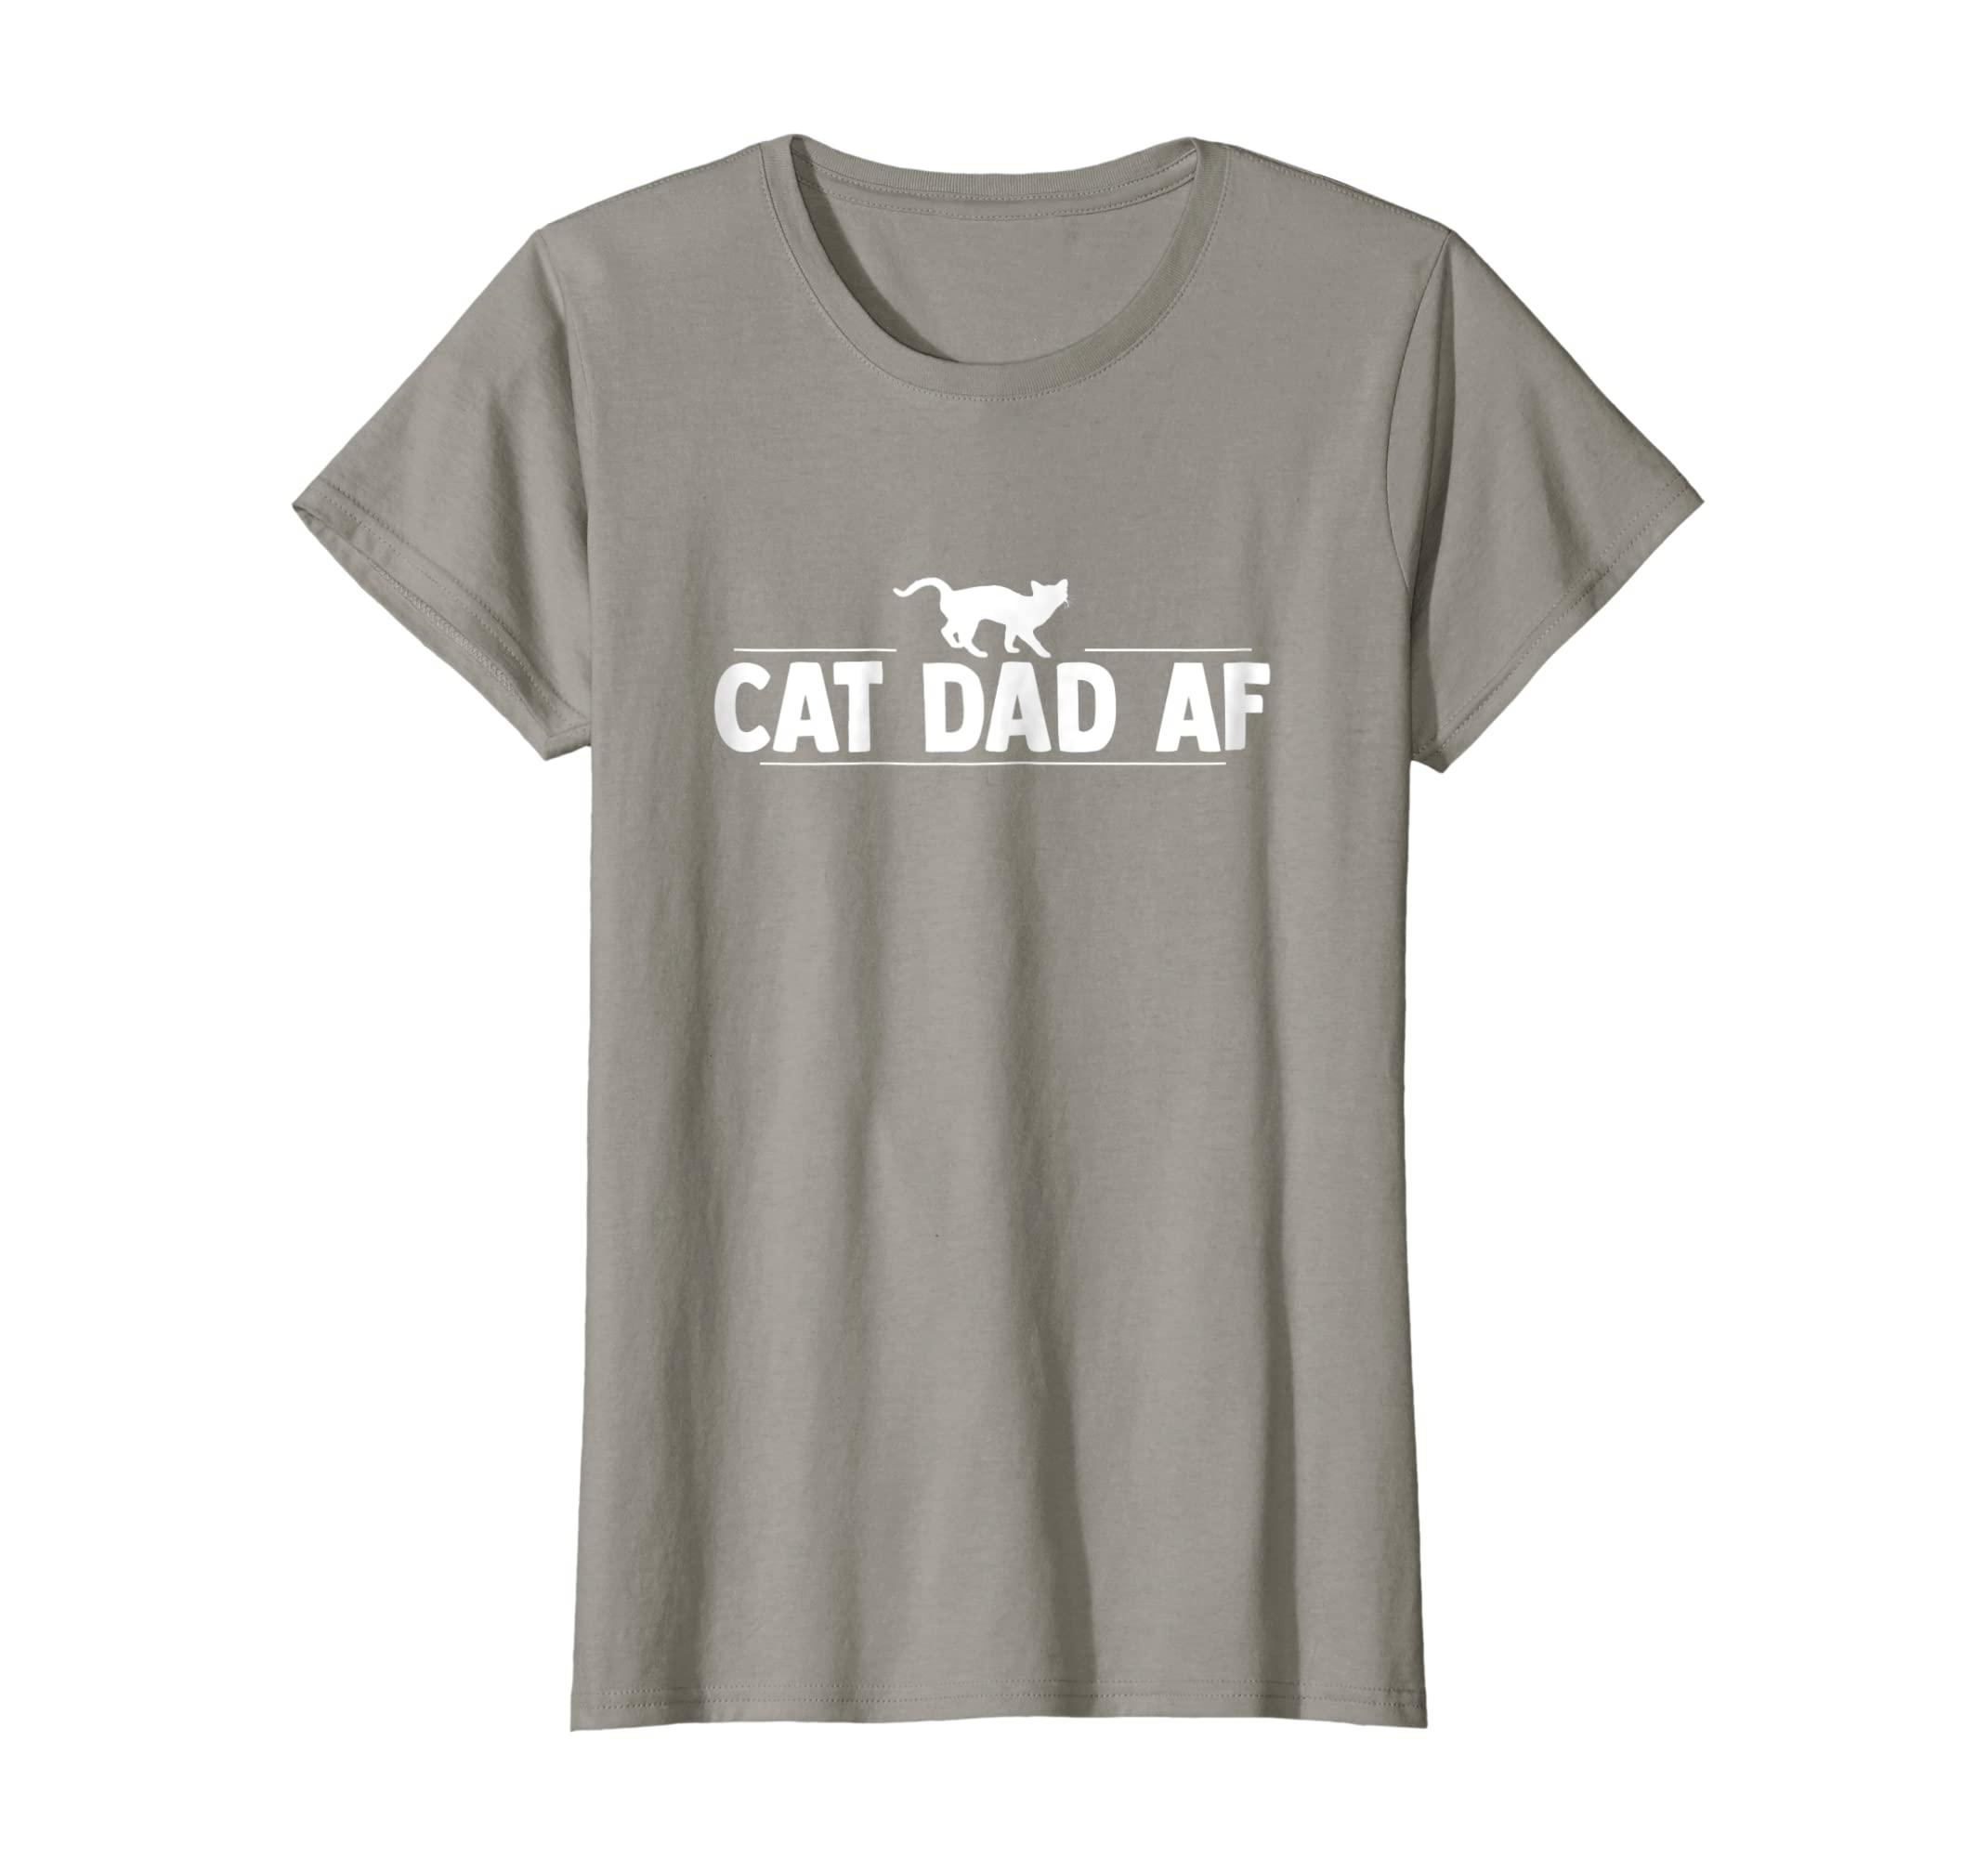 687d9bc1 Amazon.com: Cat Dad AF TShirt for father day gift Dads of Cats shirt:  Clothing